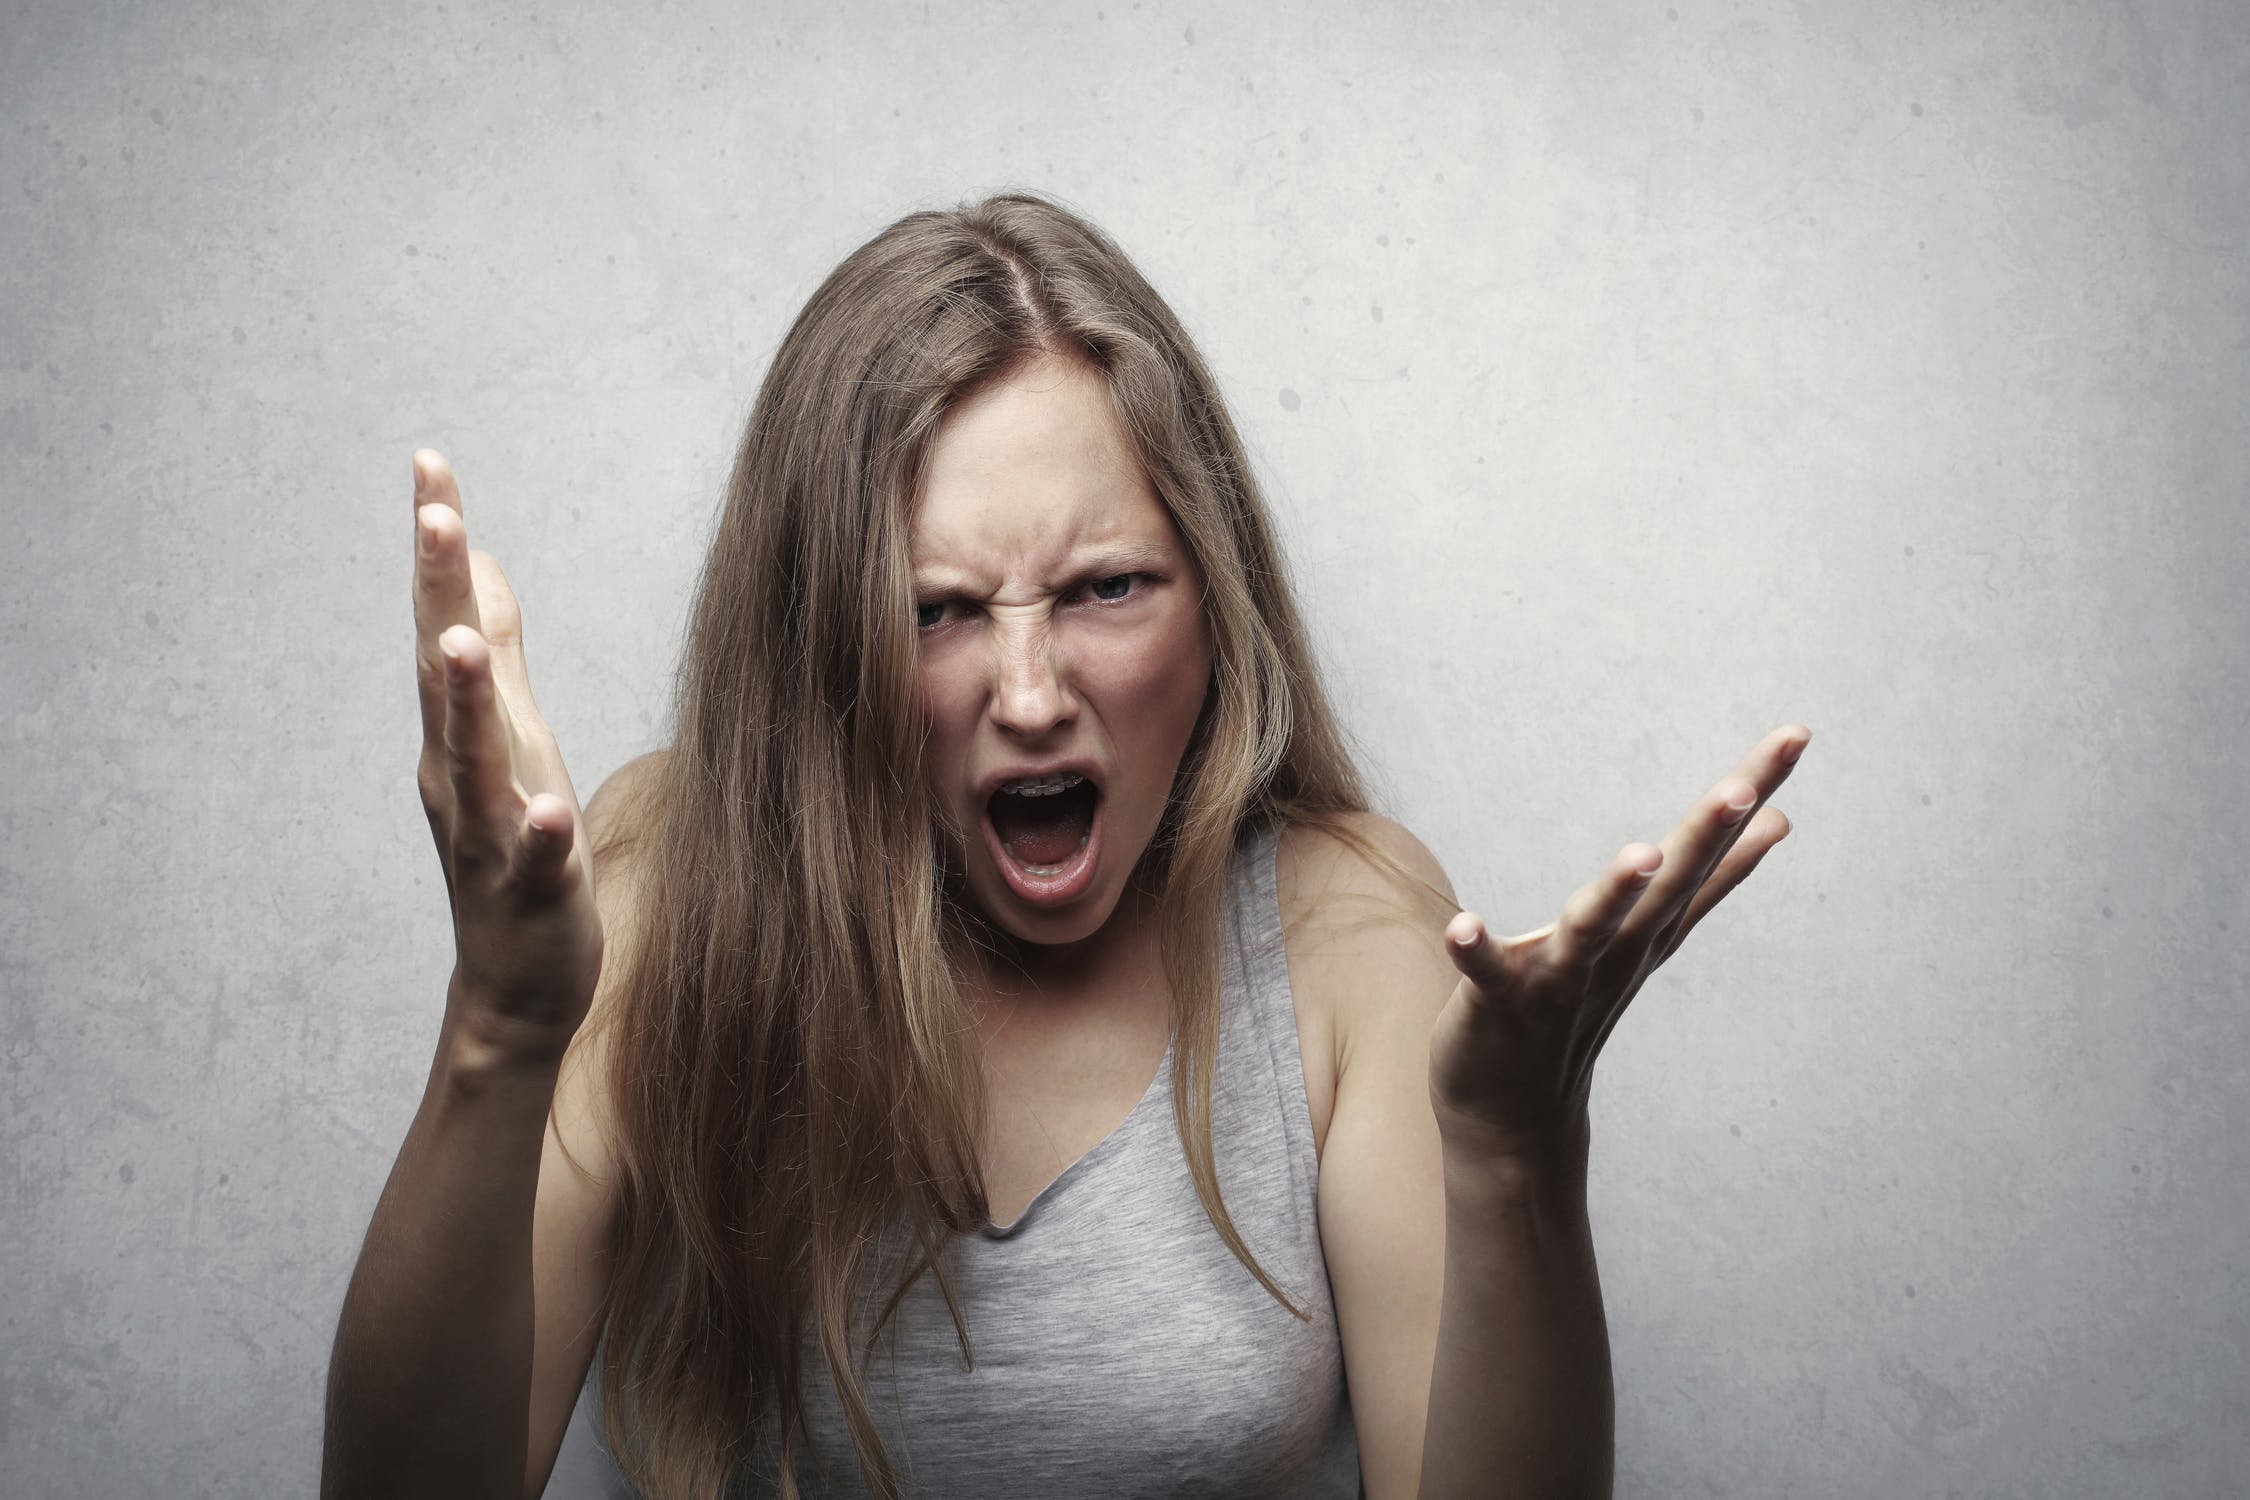 Angry looking woman | Source: Unsplash